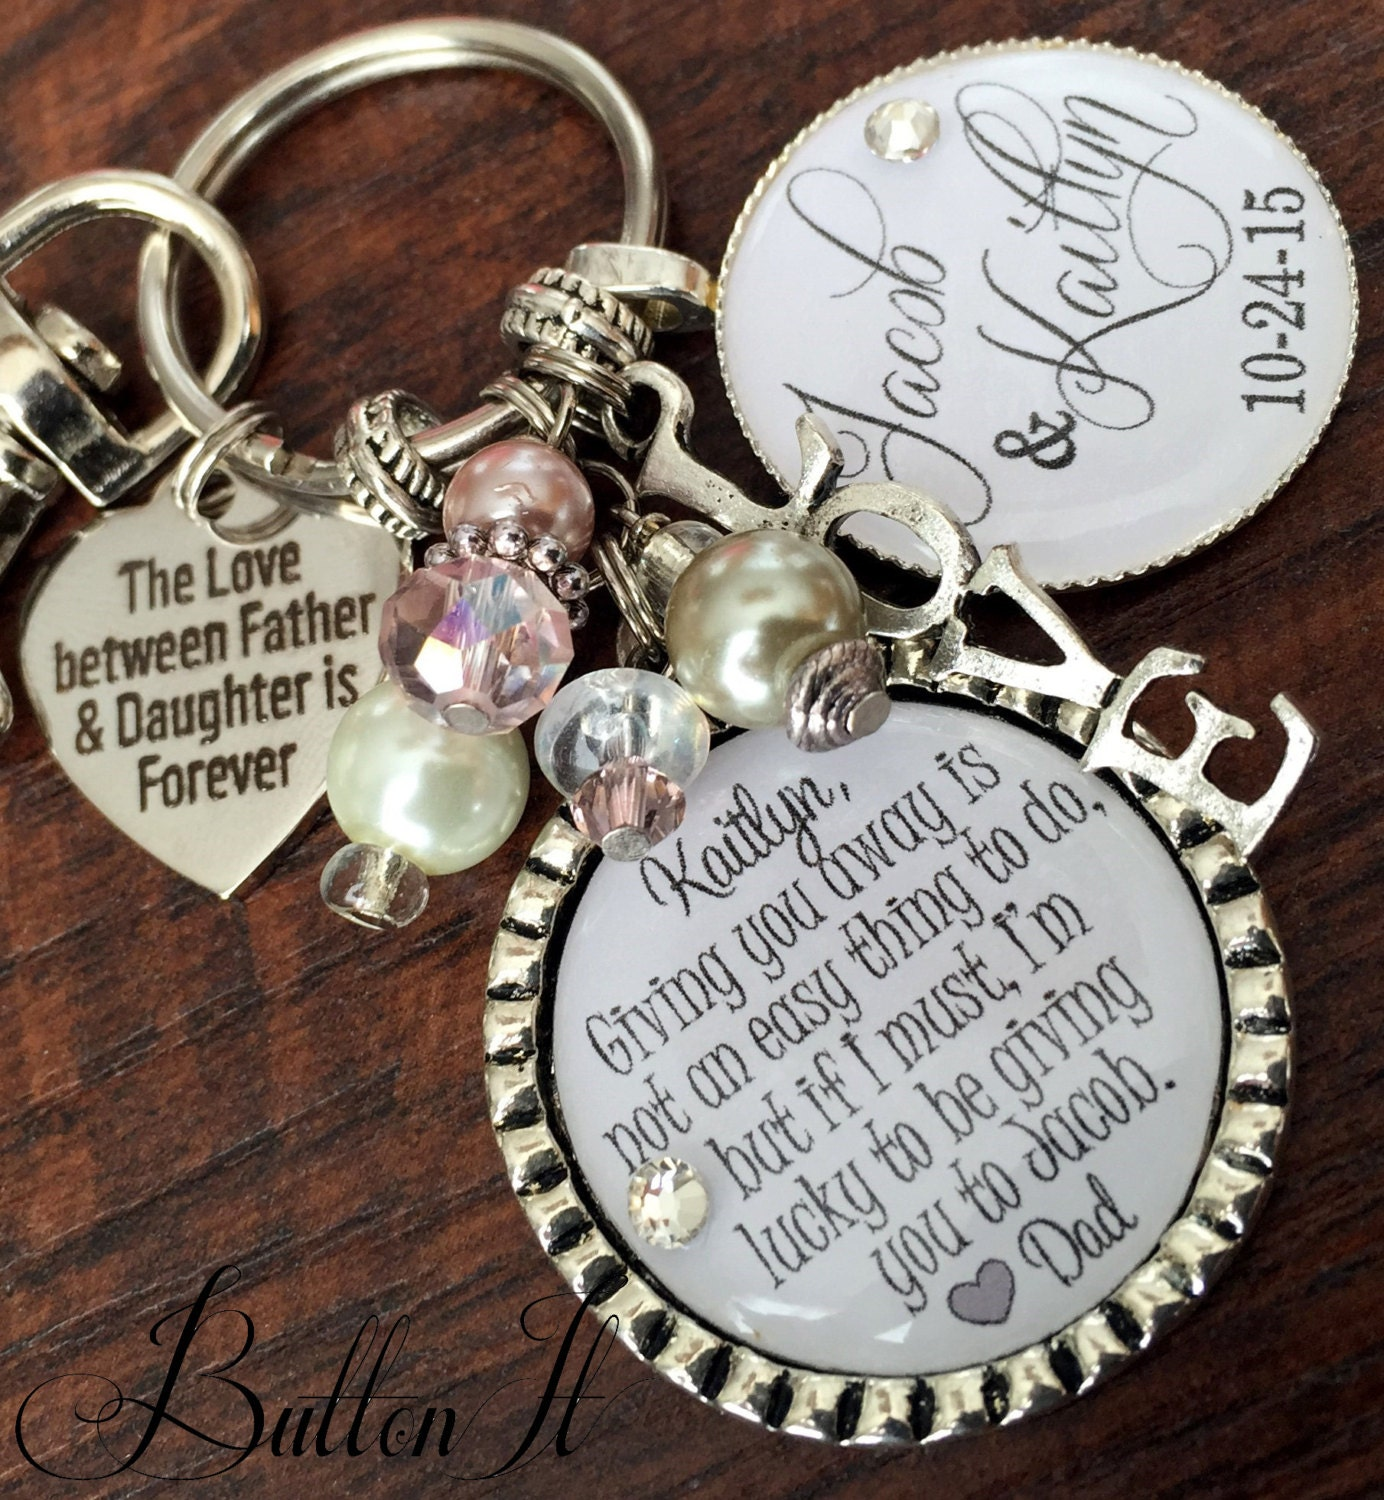 Gifts For Bride On Wedding Day From Bridesmaid: Wedding Gift For Bride From Dad Daughter Wedding Gift Bridal